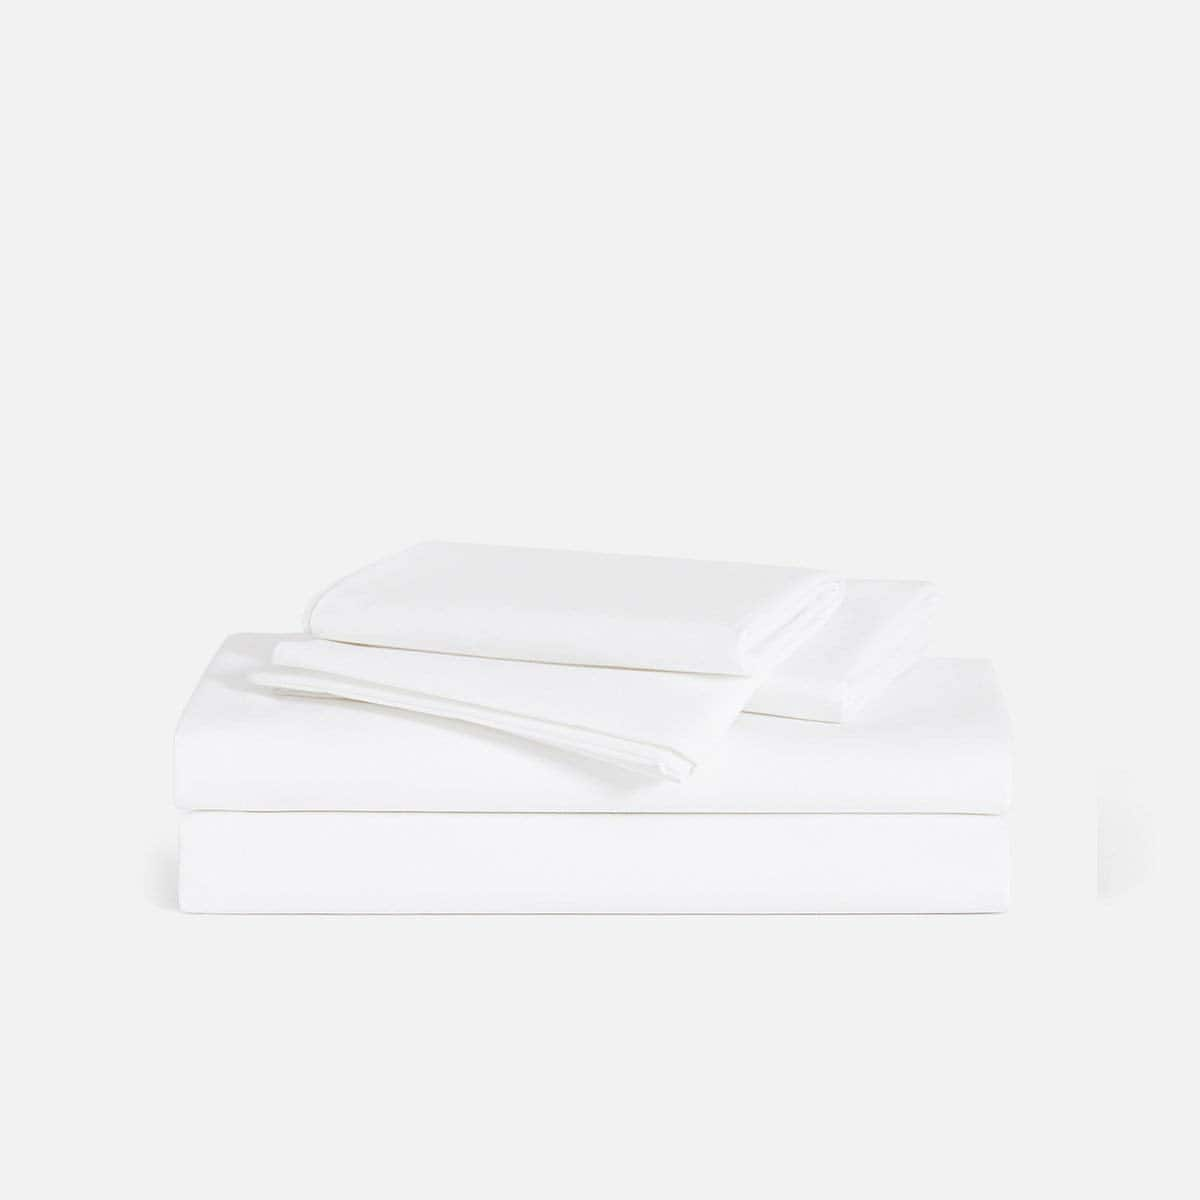 Brooklinen Luxe Core Sheet Set (Multiple sizes and colors) King $126.98, Queen $111.96 + Free shipping